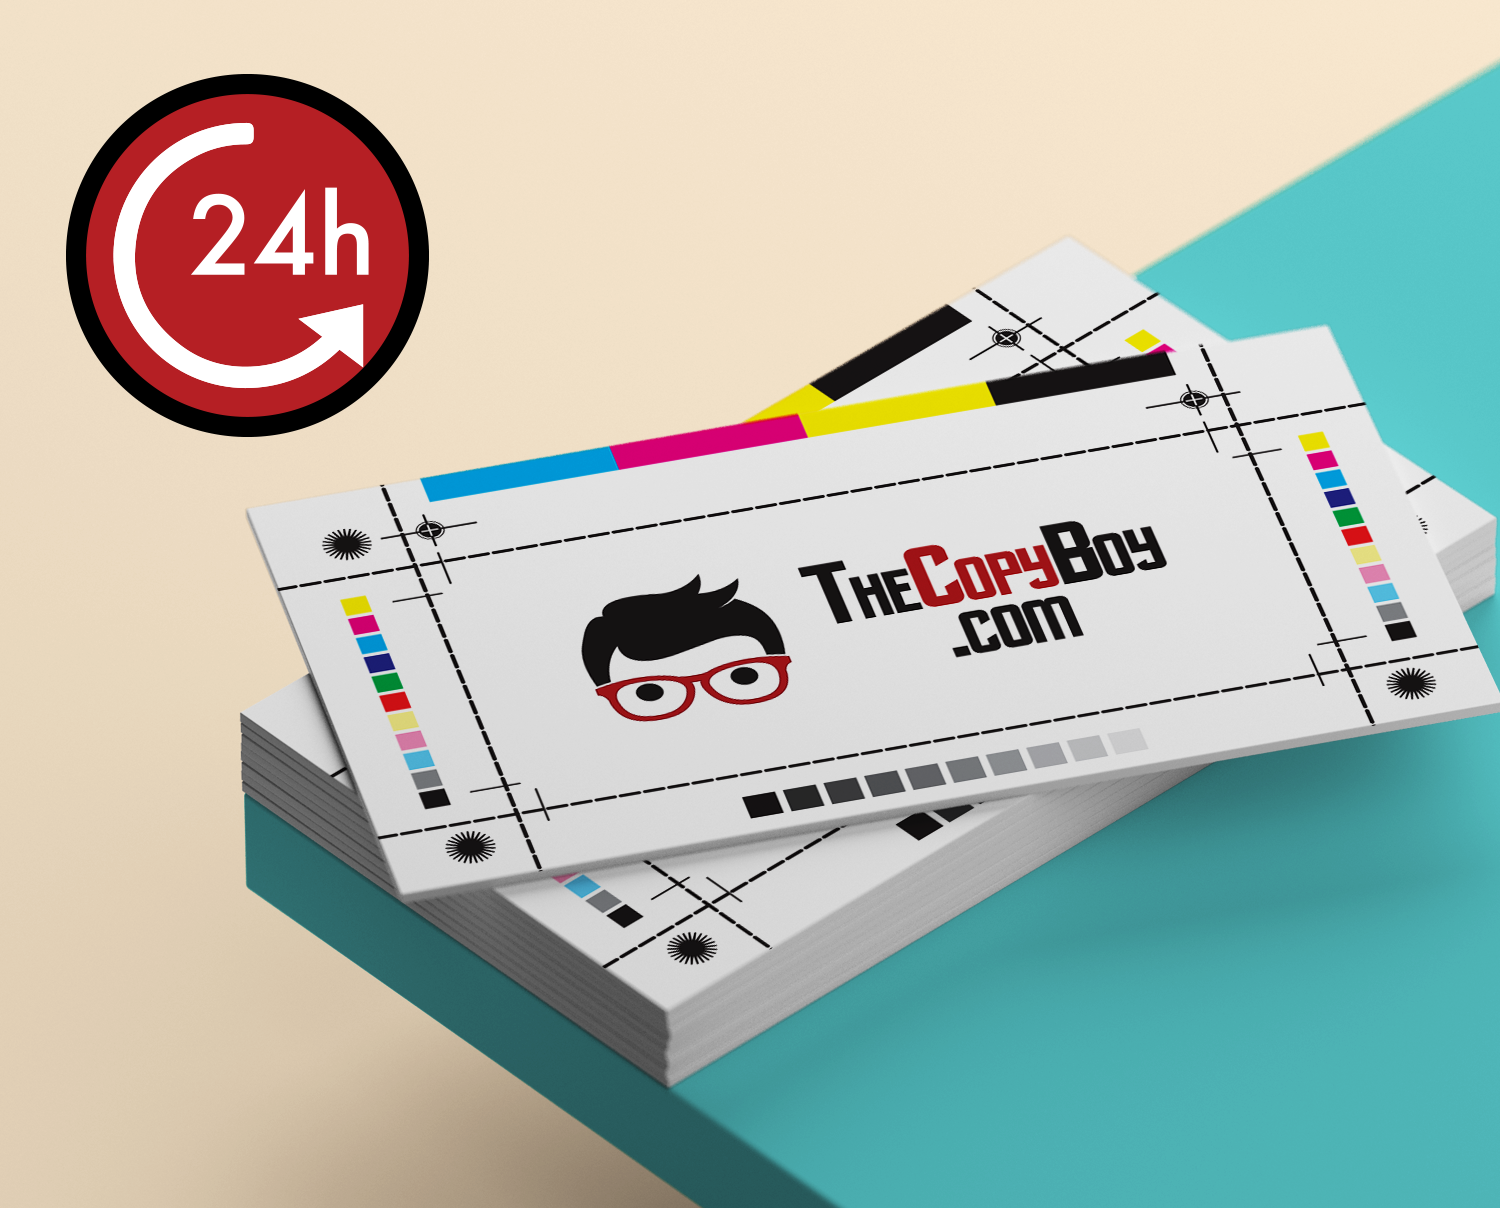 24 Hours Business Card – The Copy Boy